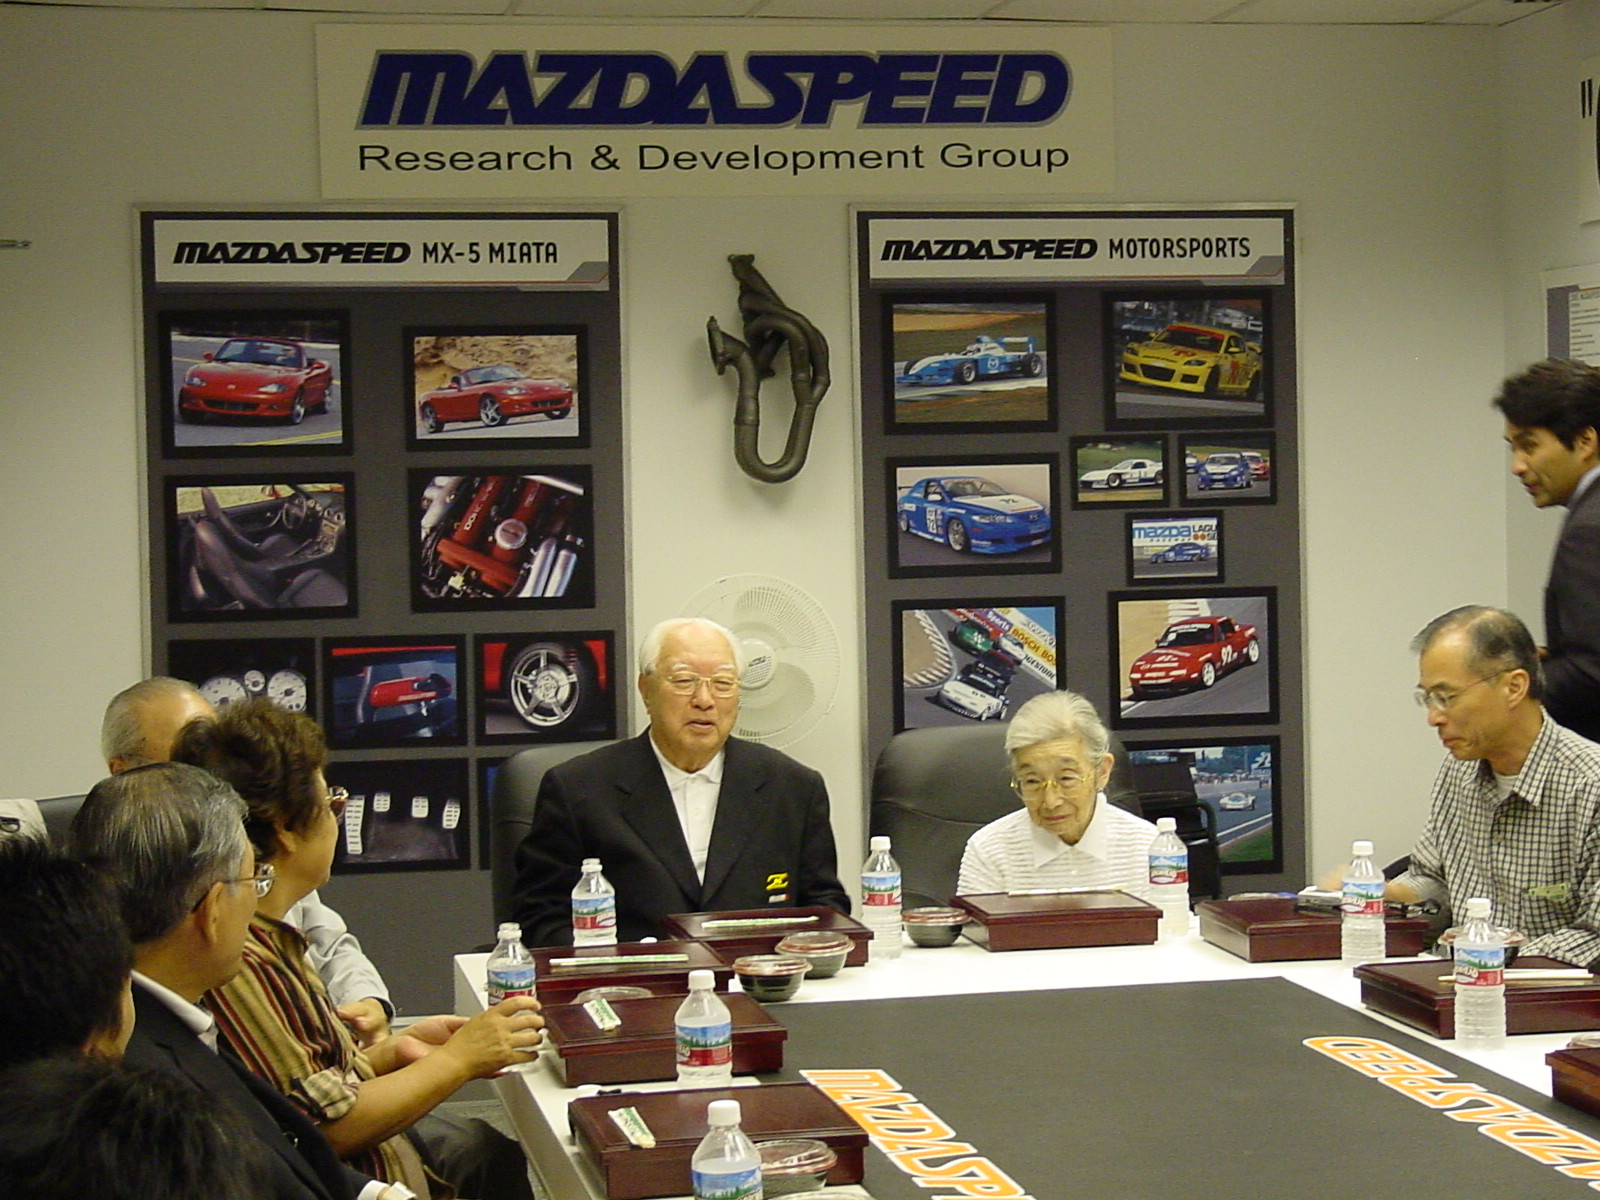 Lunch with Mr. K and Mrs. K at Mazdaspeed